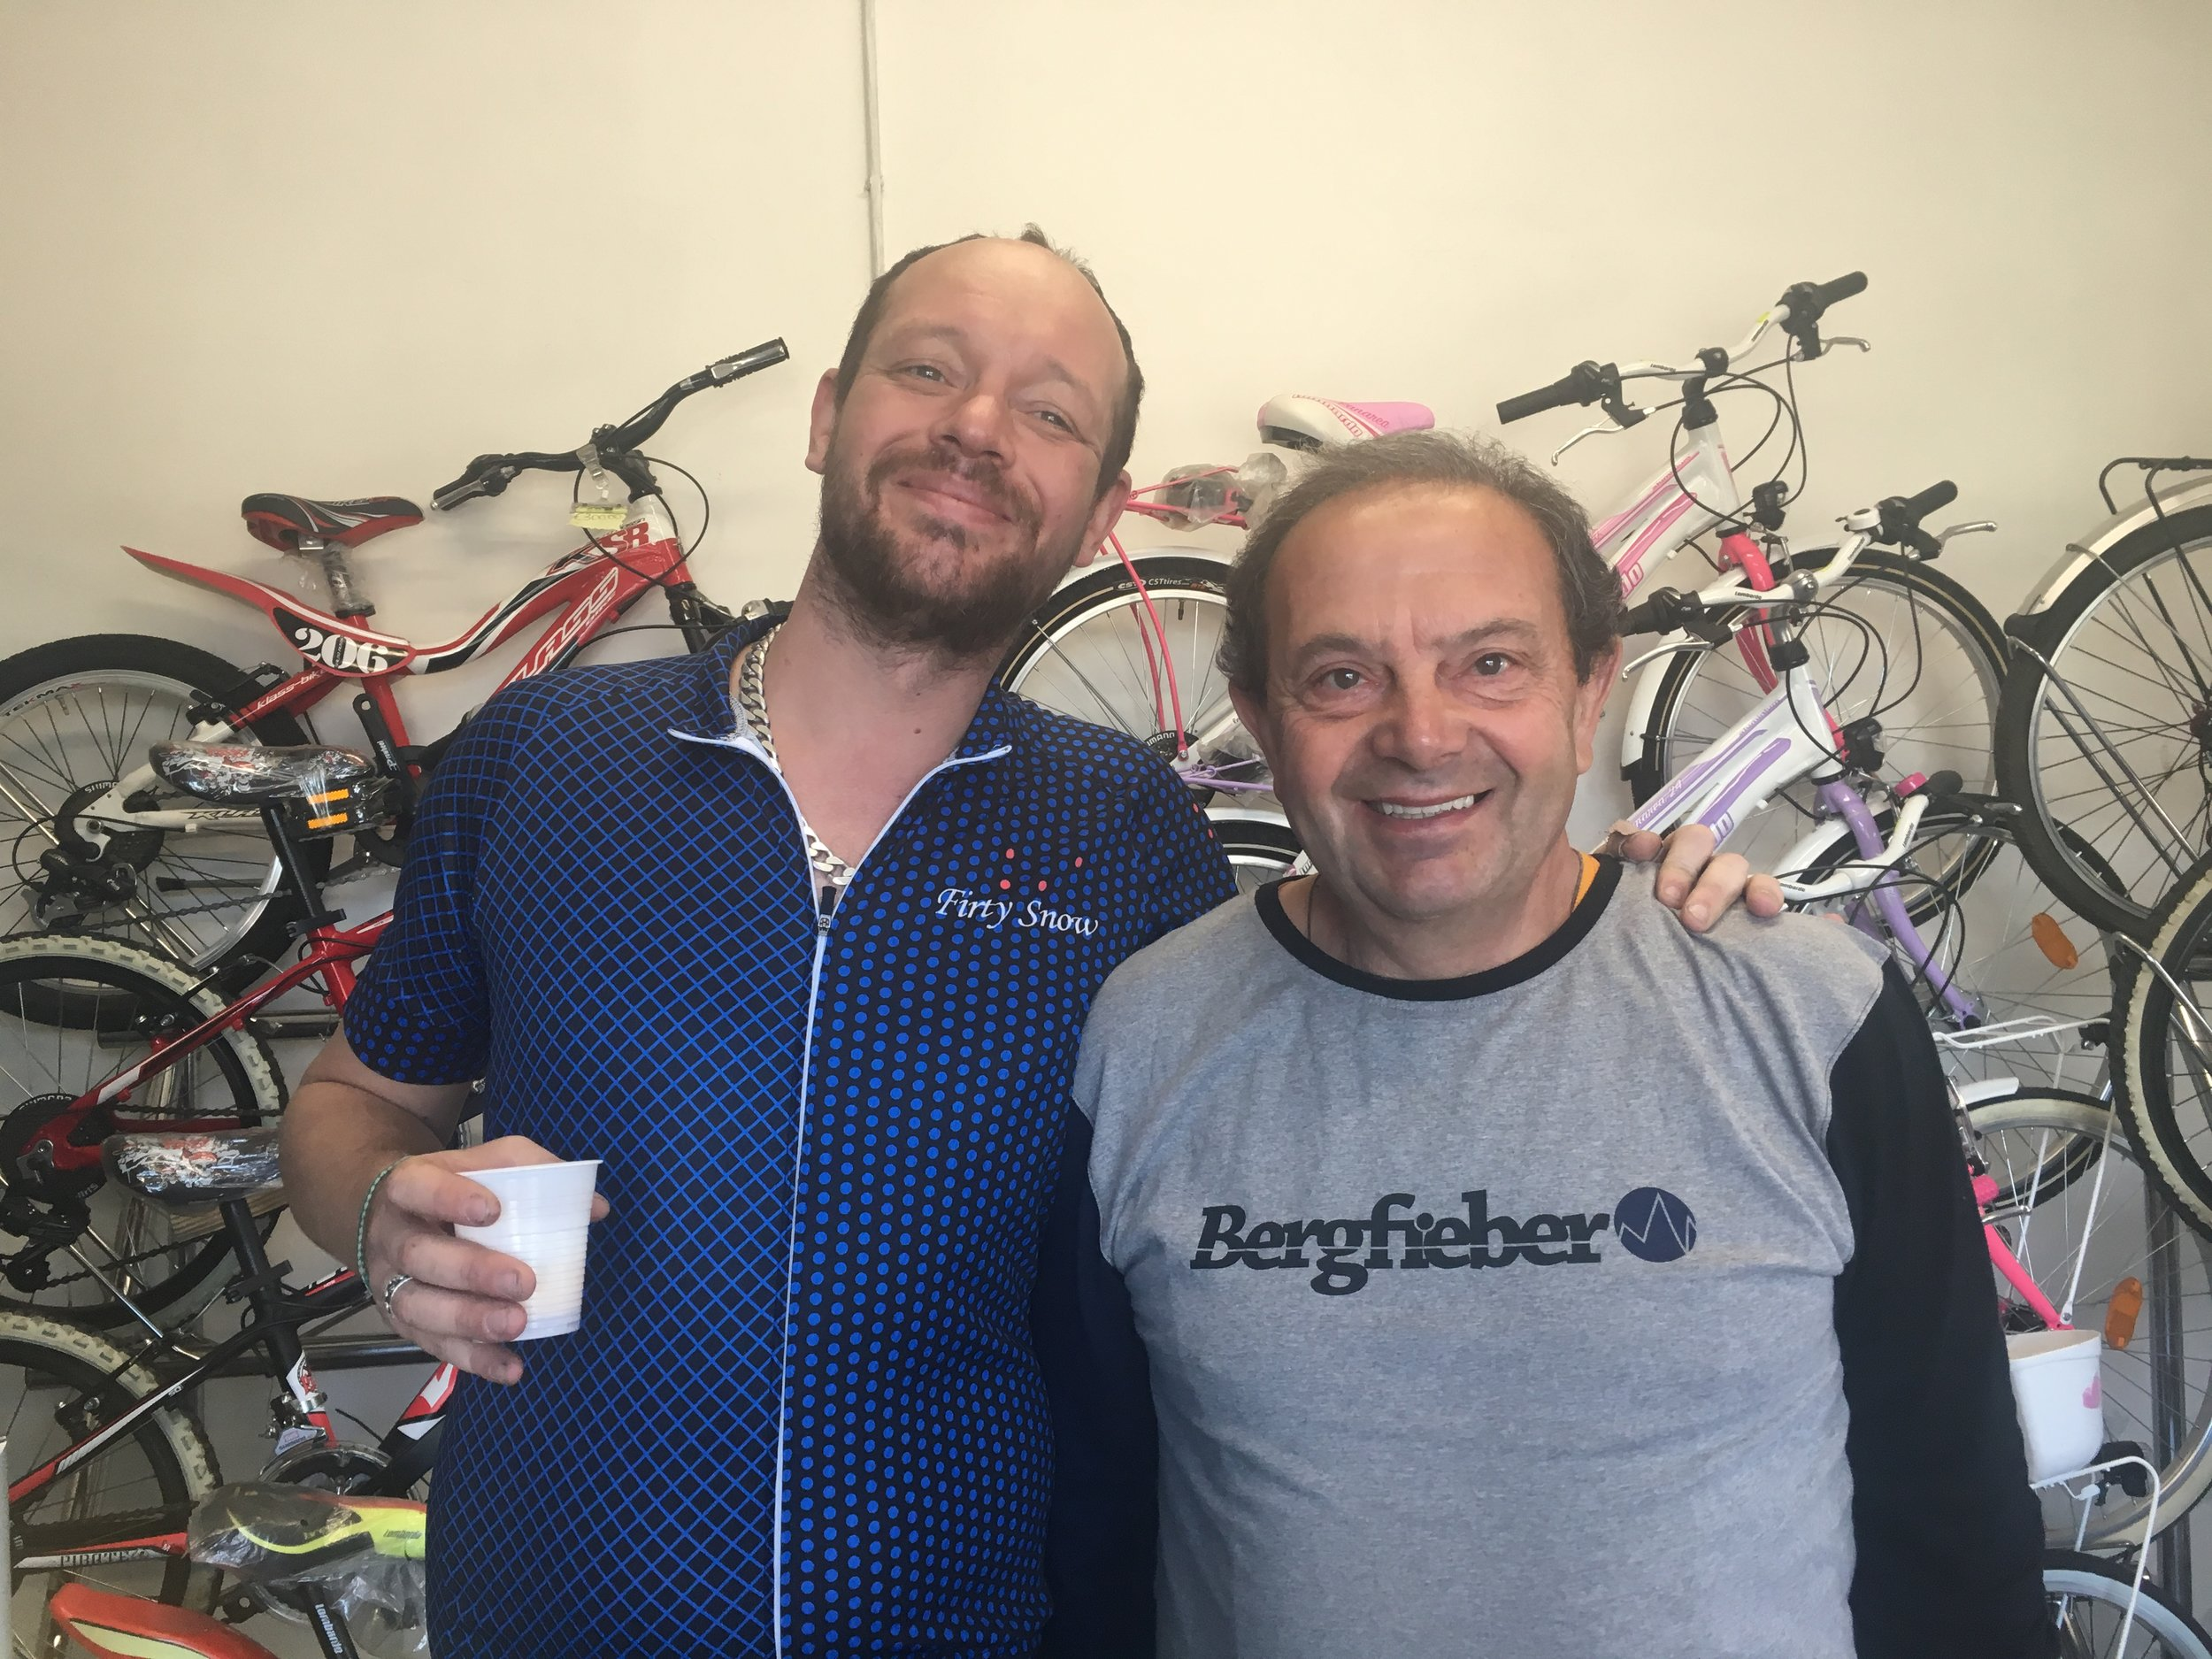 Craig and Francesco enjoy tiny cups of coffee at a bike shop outside of Isseo.